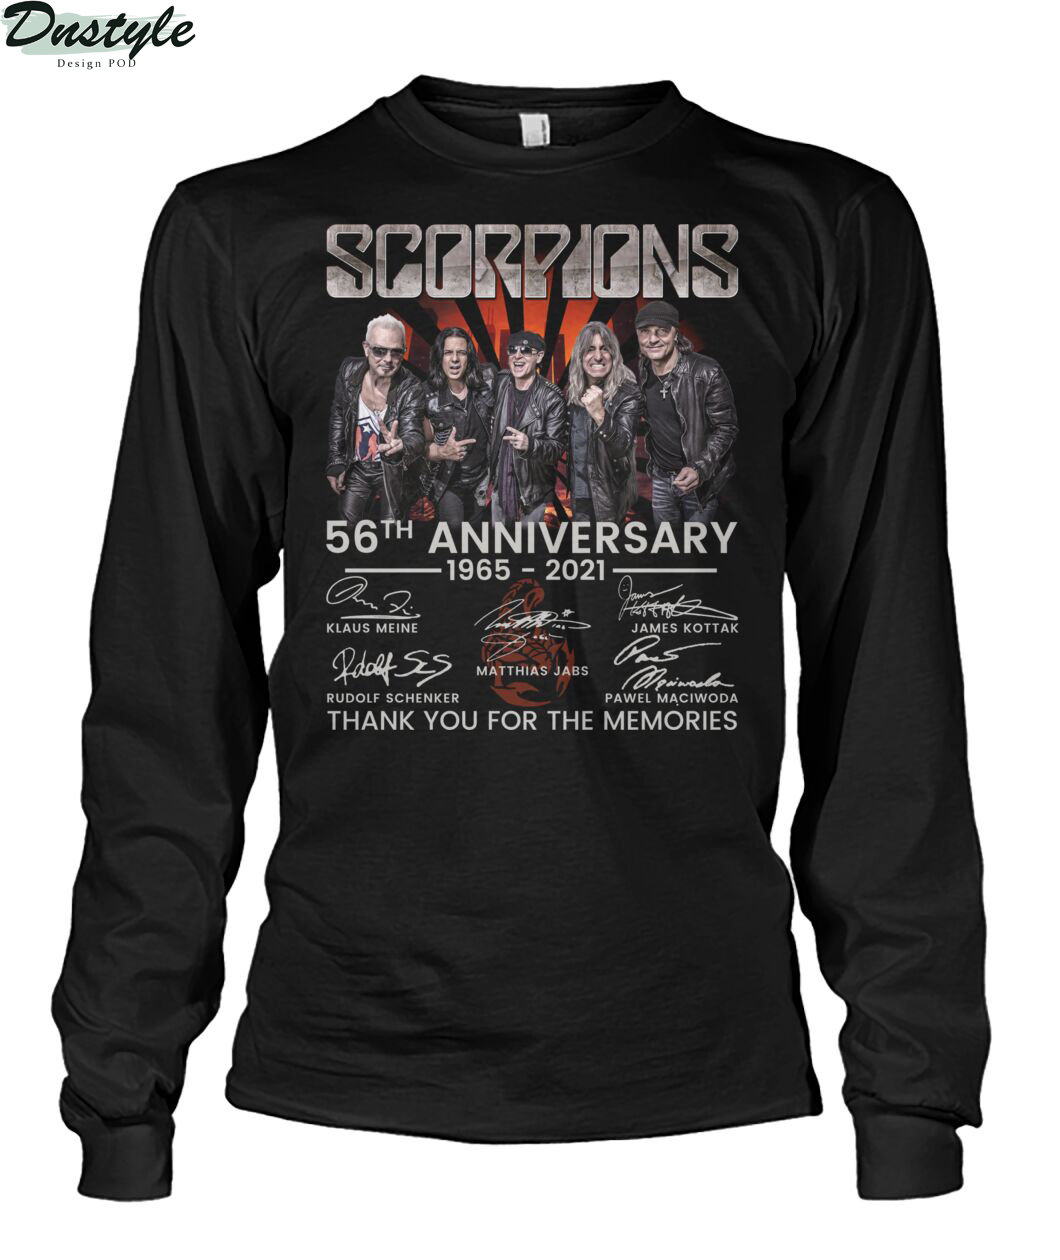 Scoprions 56th anniversary 1965 2021 thank you for the memories long sleeve